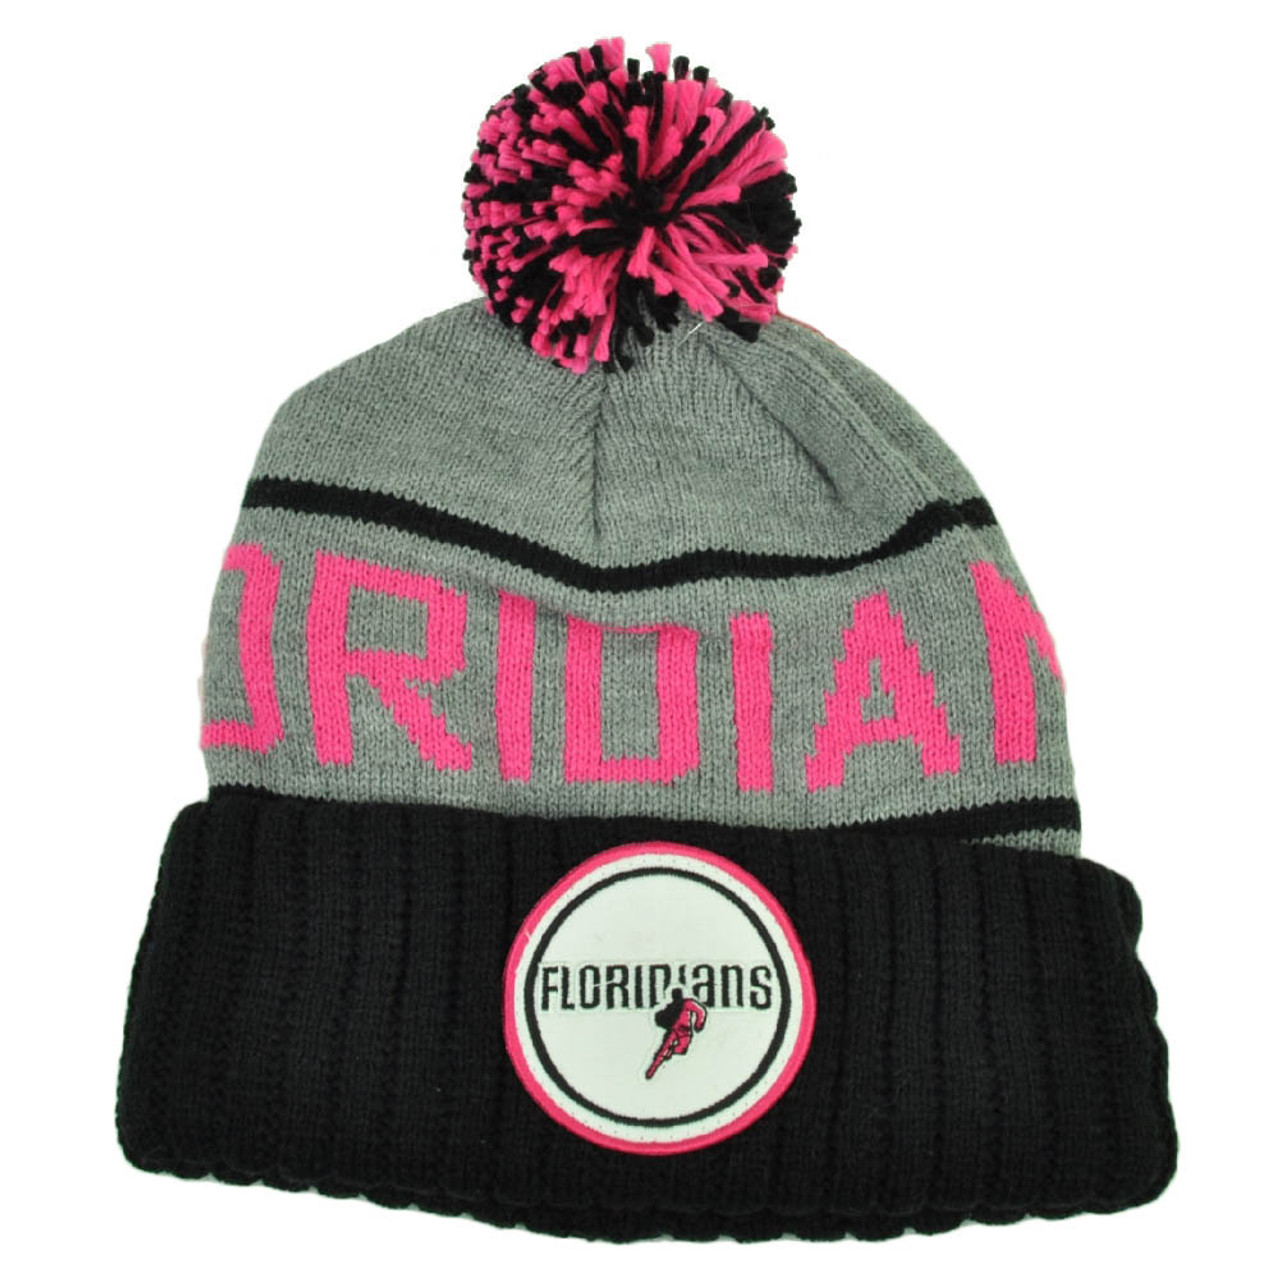 d1e93f9d5612f4 Mitchell Ness Miami Floridians Cuffed Pin Pom Pom Knit Beanie Skully Gray  Pink - Cap Store Online.com